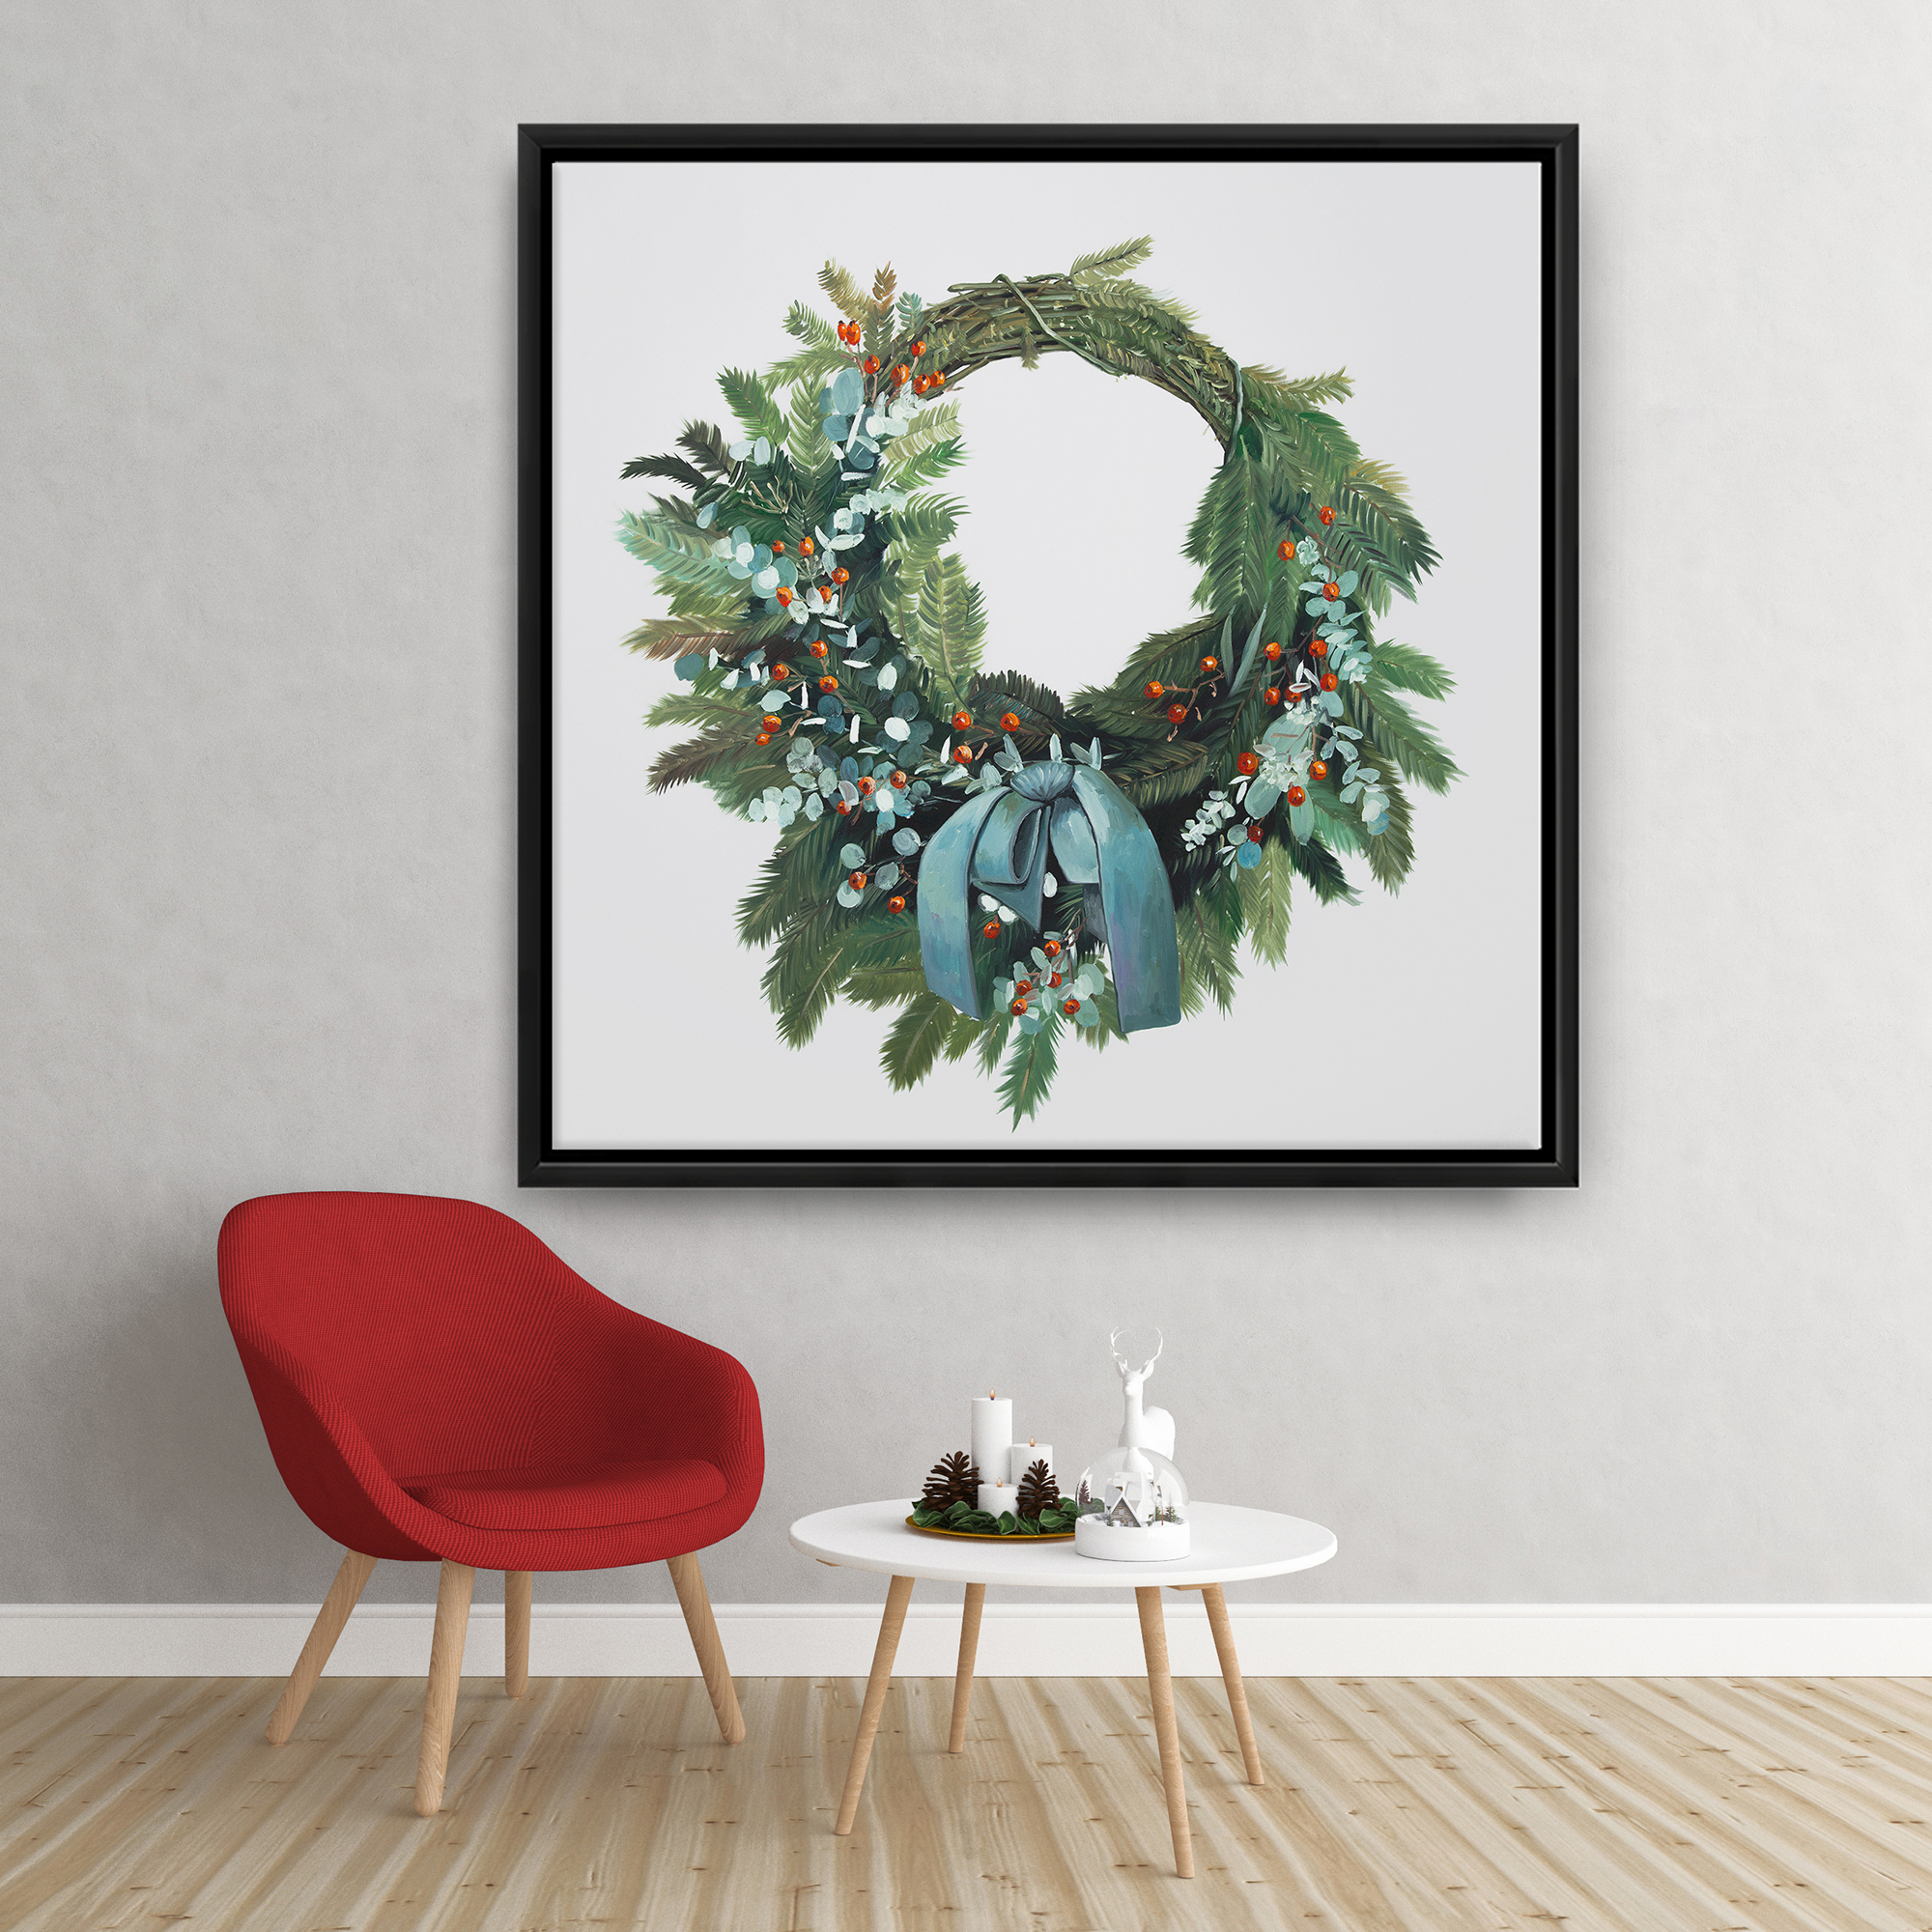 Framed 36 x 36 - Christmas wreath